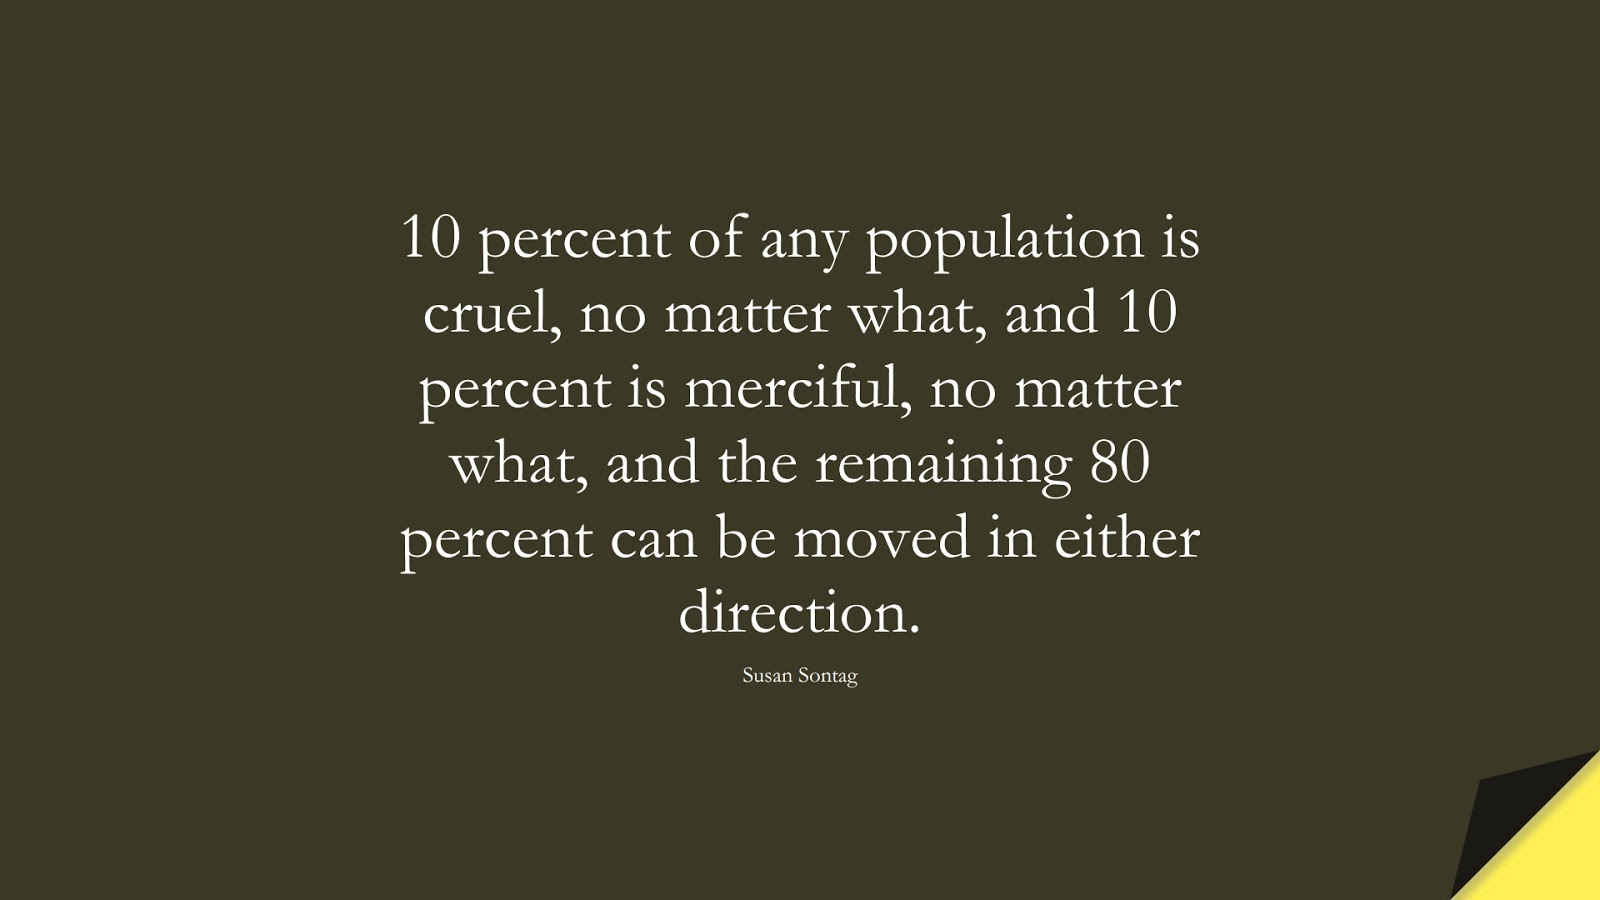 10 percent of any population is cruel, no matter what, and 10 percent is merciful, no matter what, and the remaining 80 percent can be moved in either direction. (Susan Sontag);  #HumanityQuotes